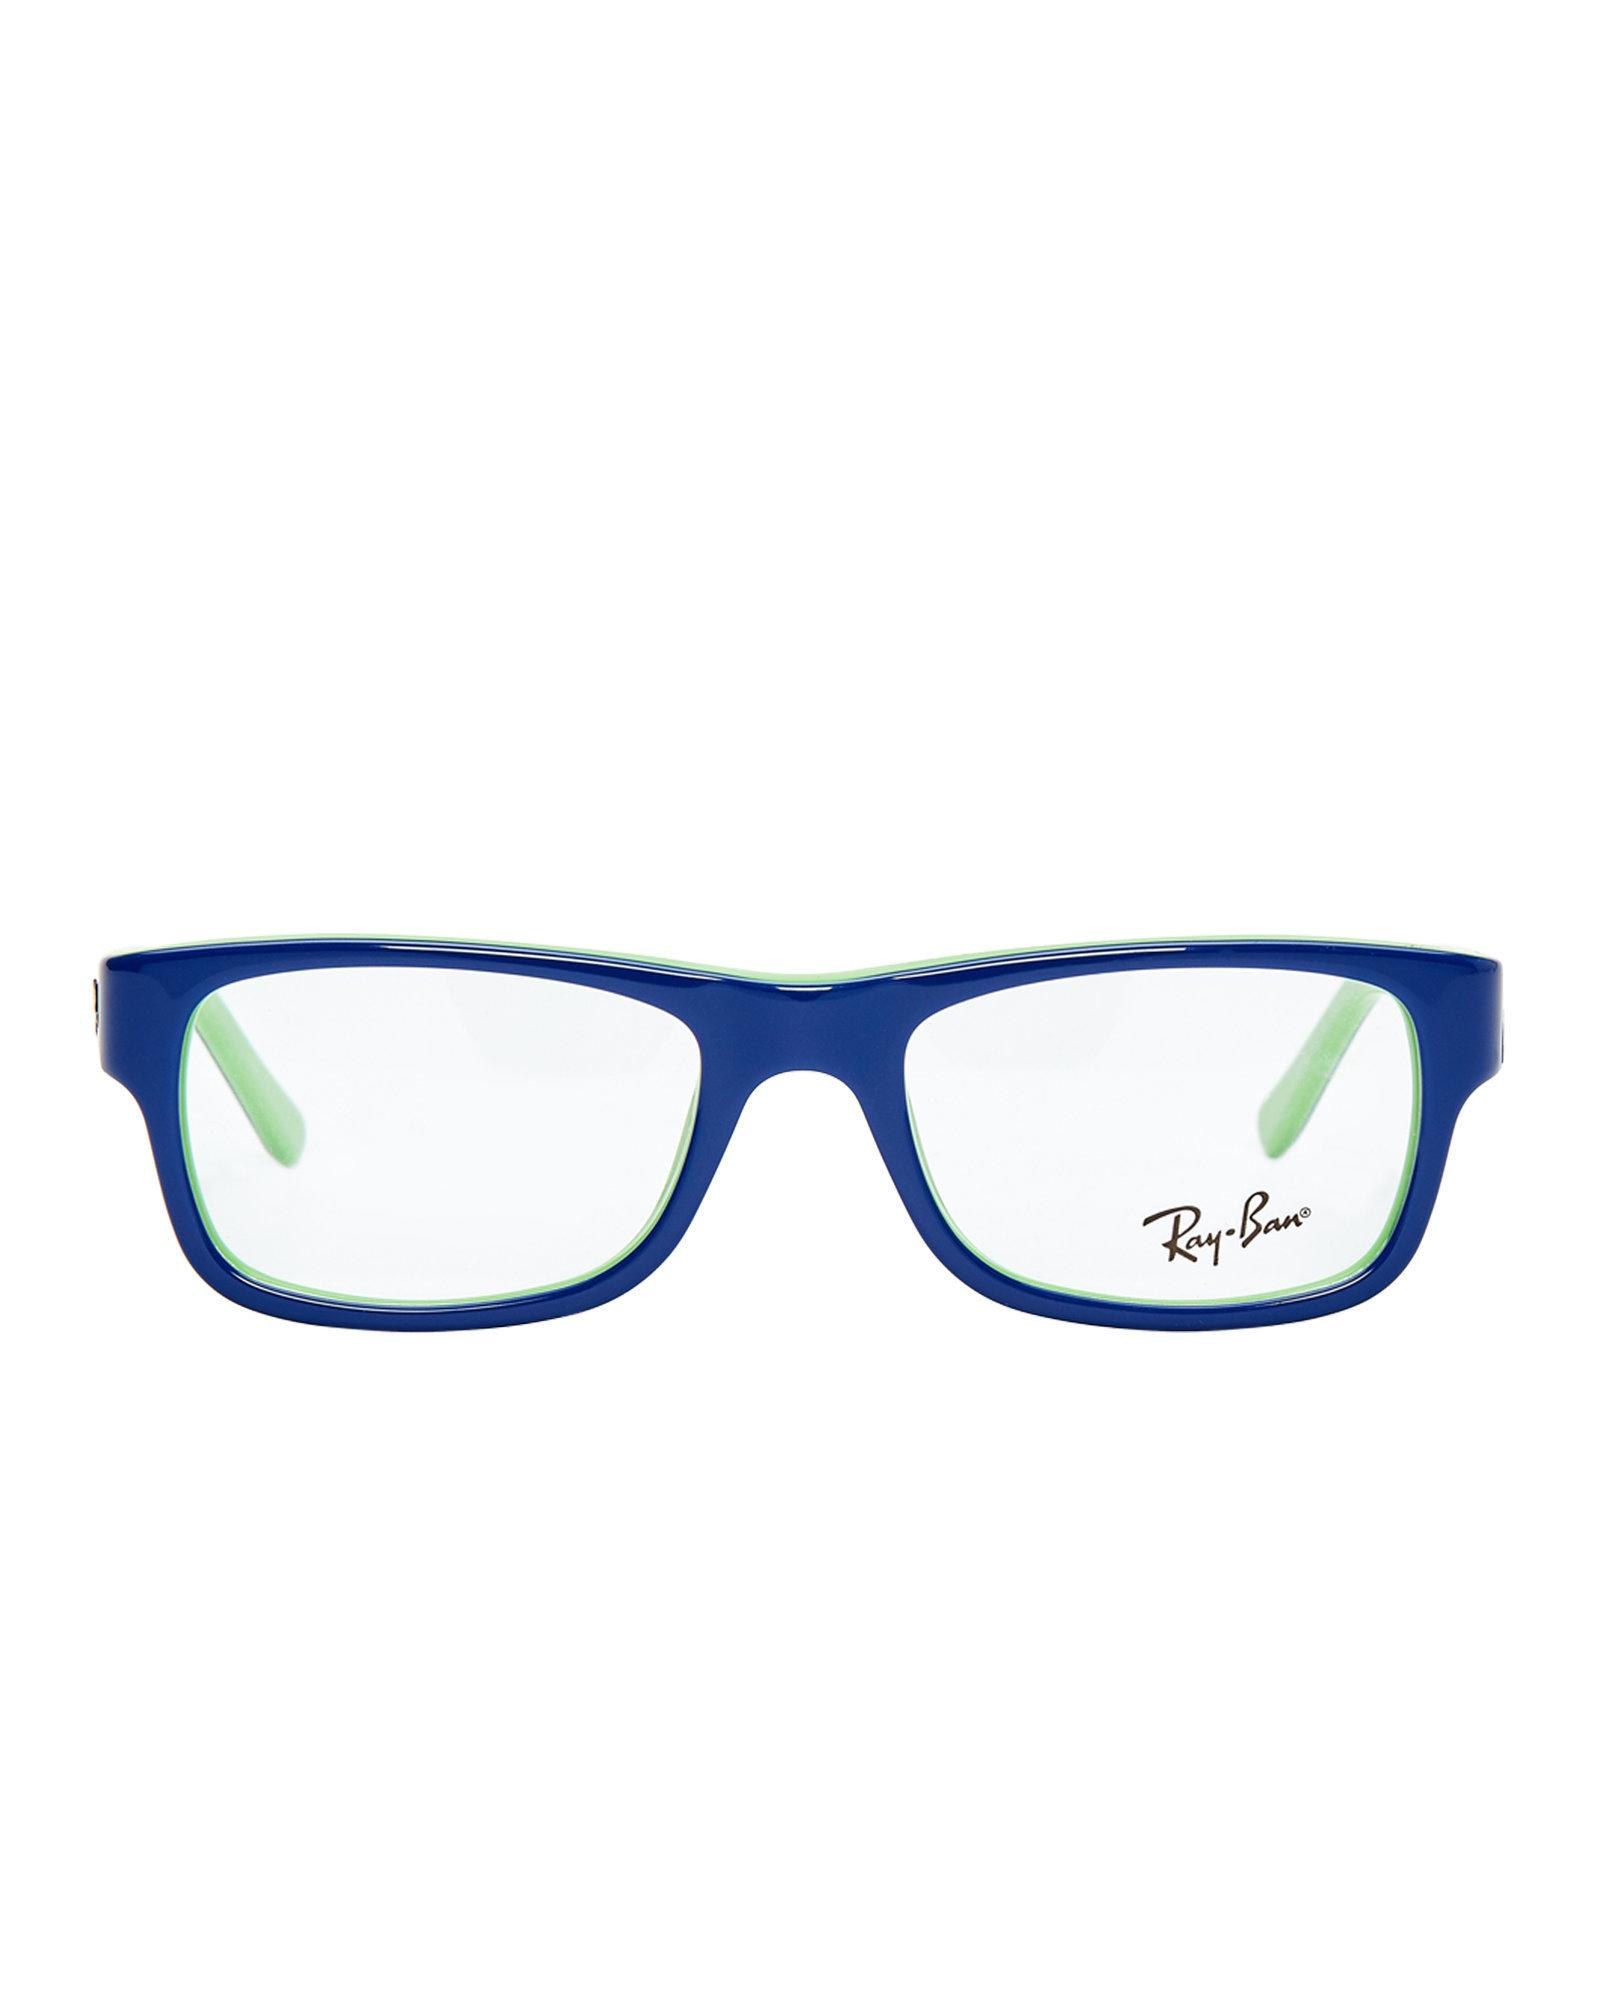 Lyst - Ray-Ban Rb5268 Blue & Green Rectangle Optical Frames in Blue ...